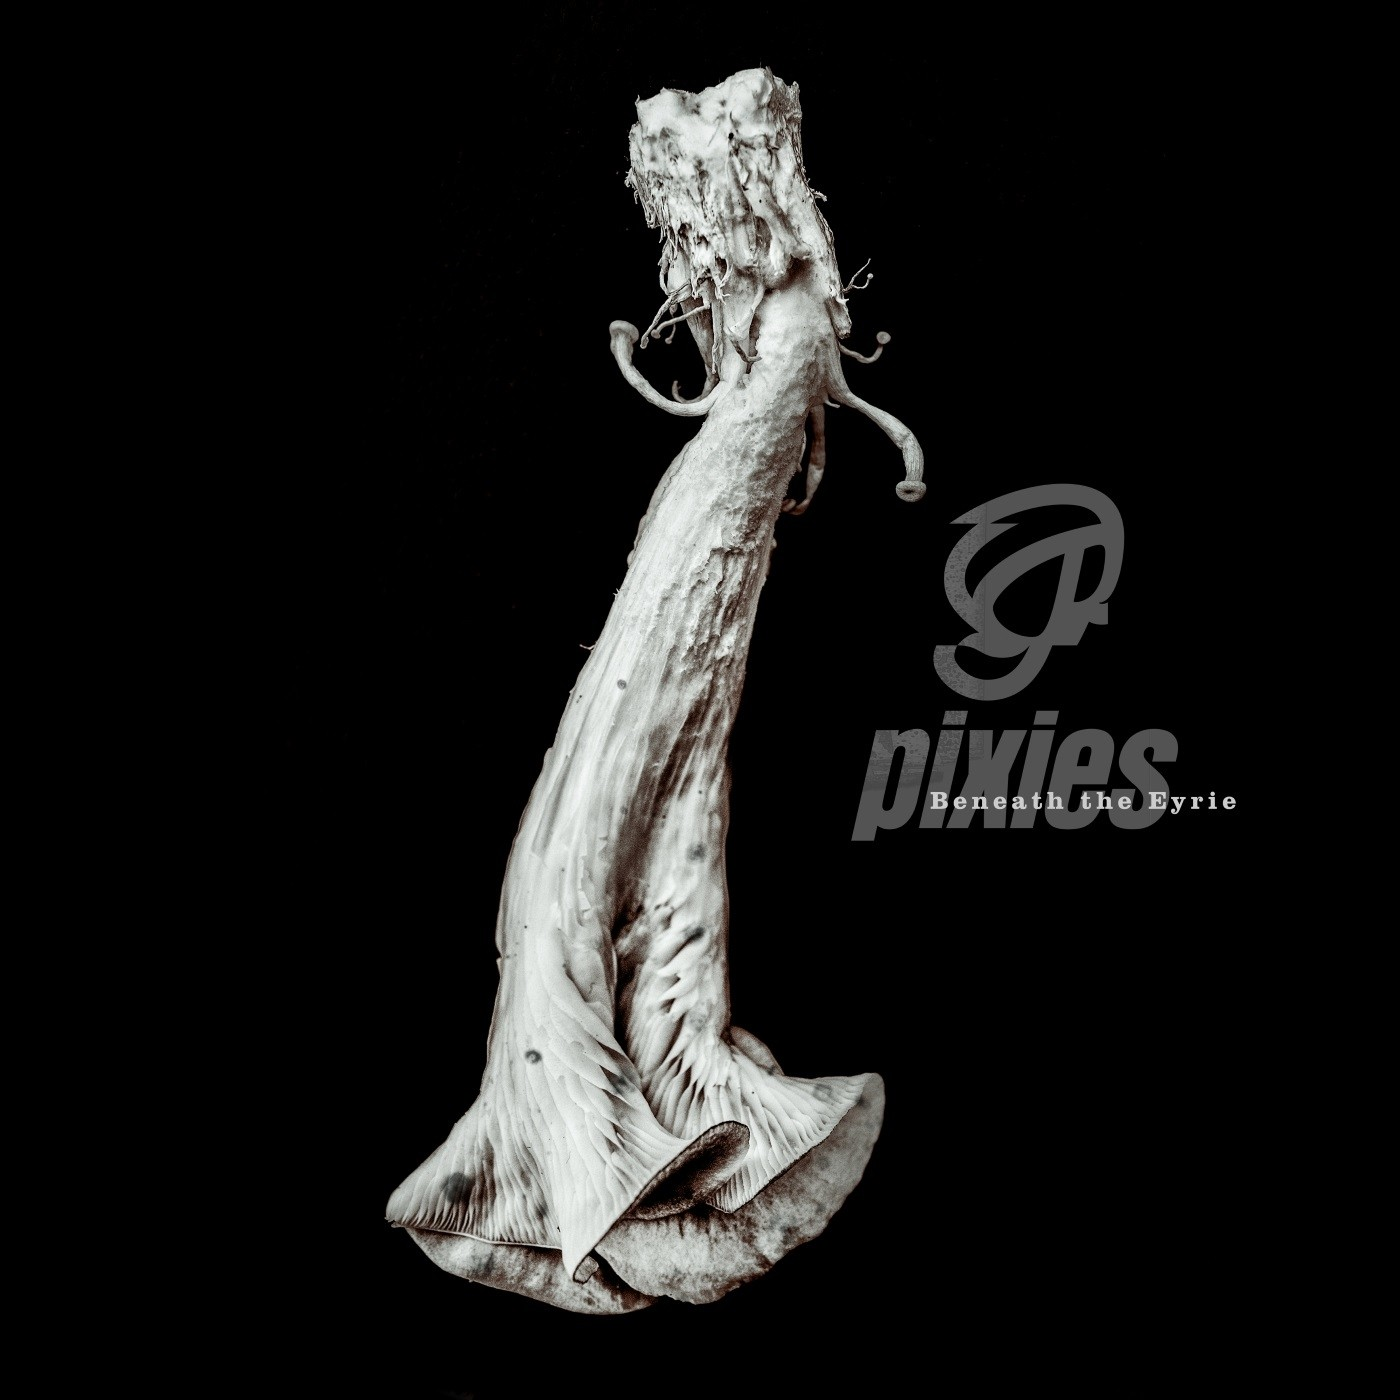 Pixies - Beneath the Eyrie - CD